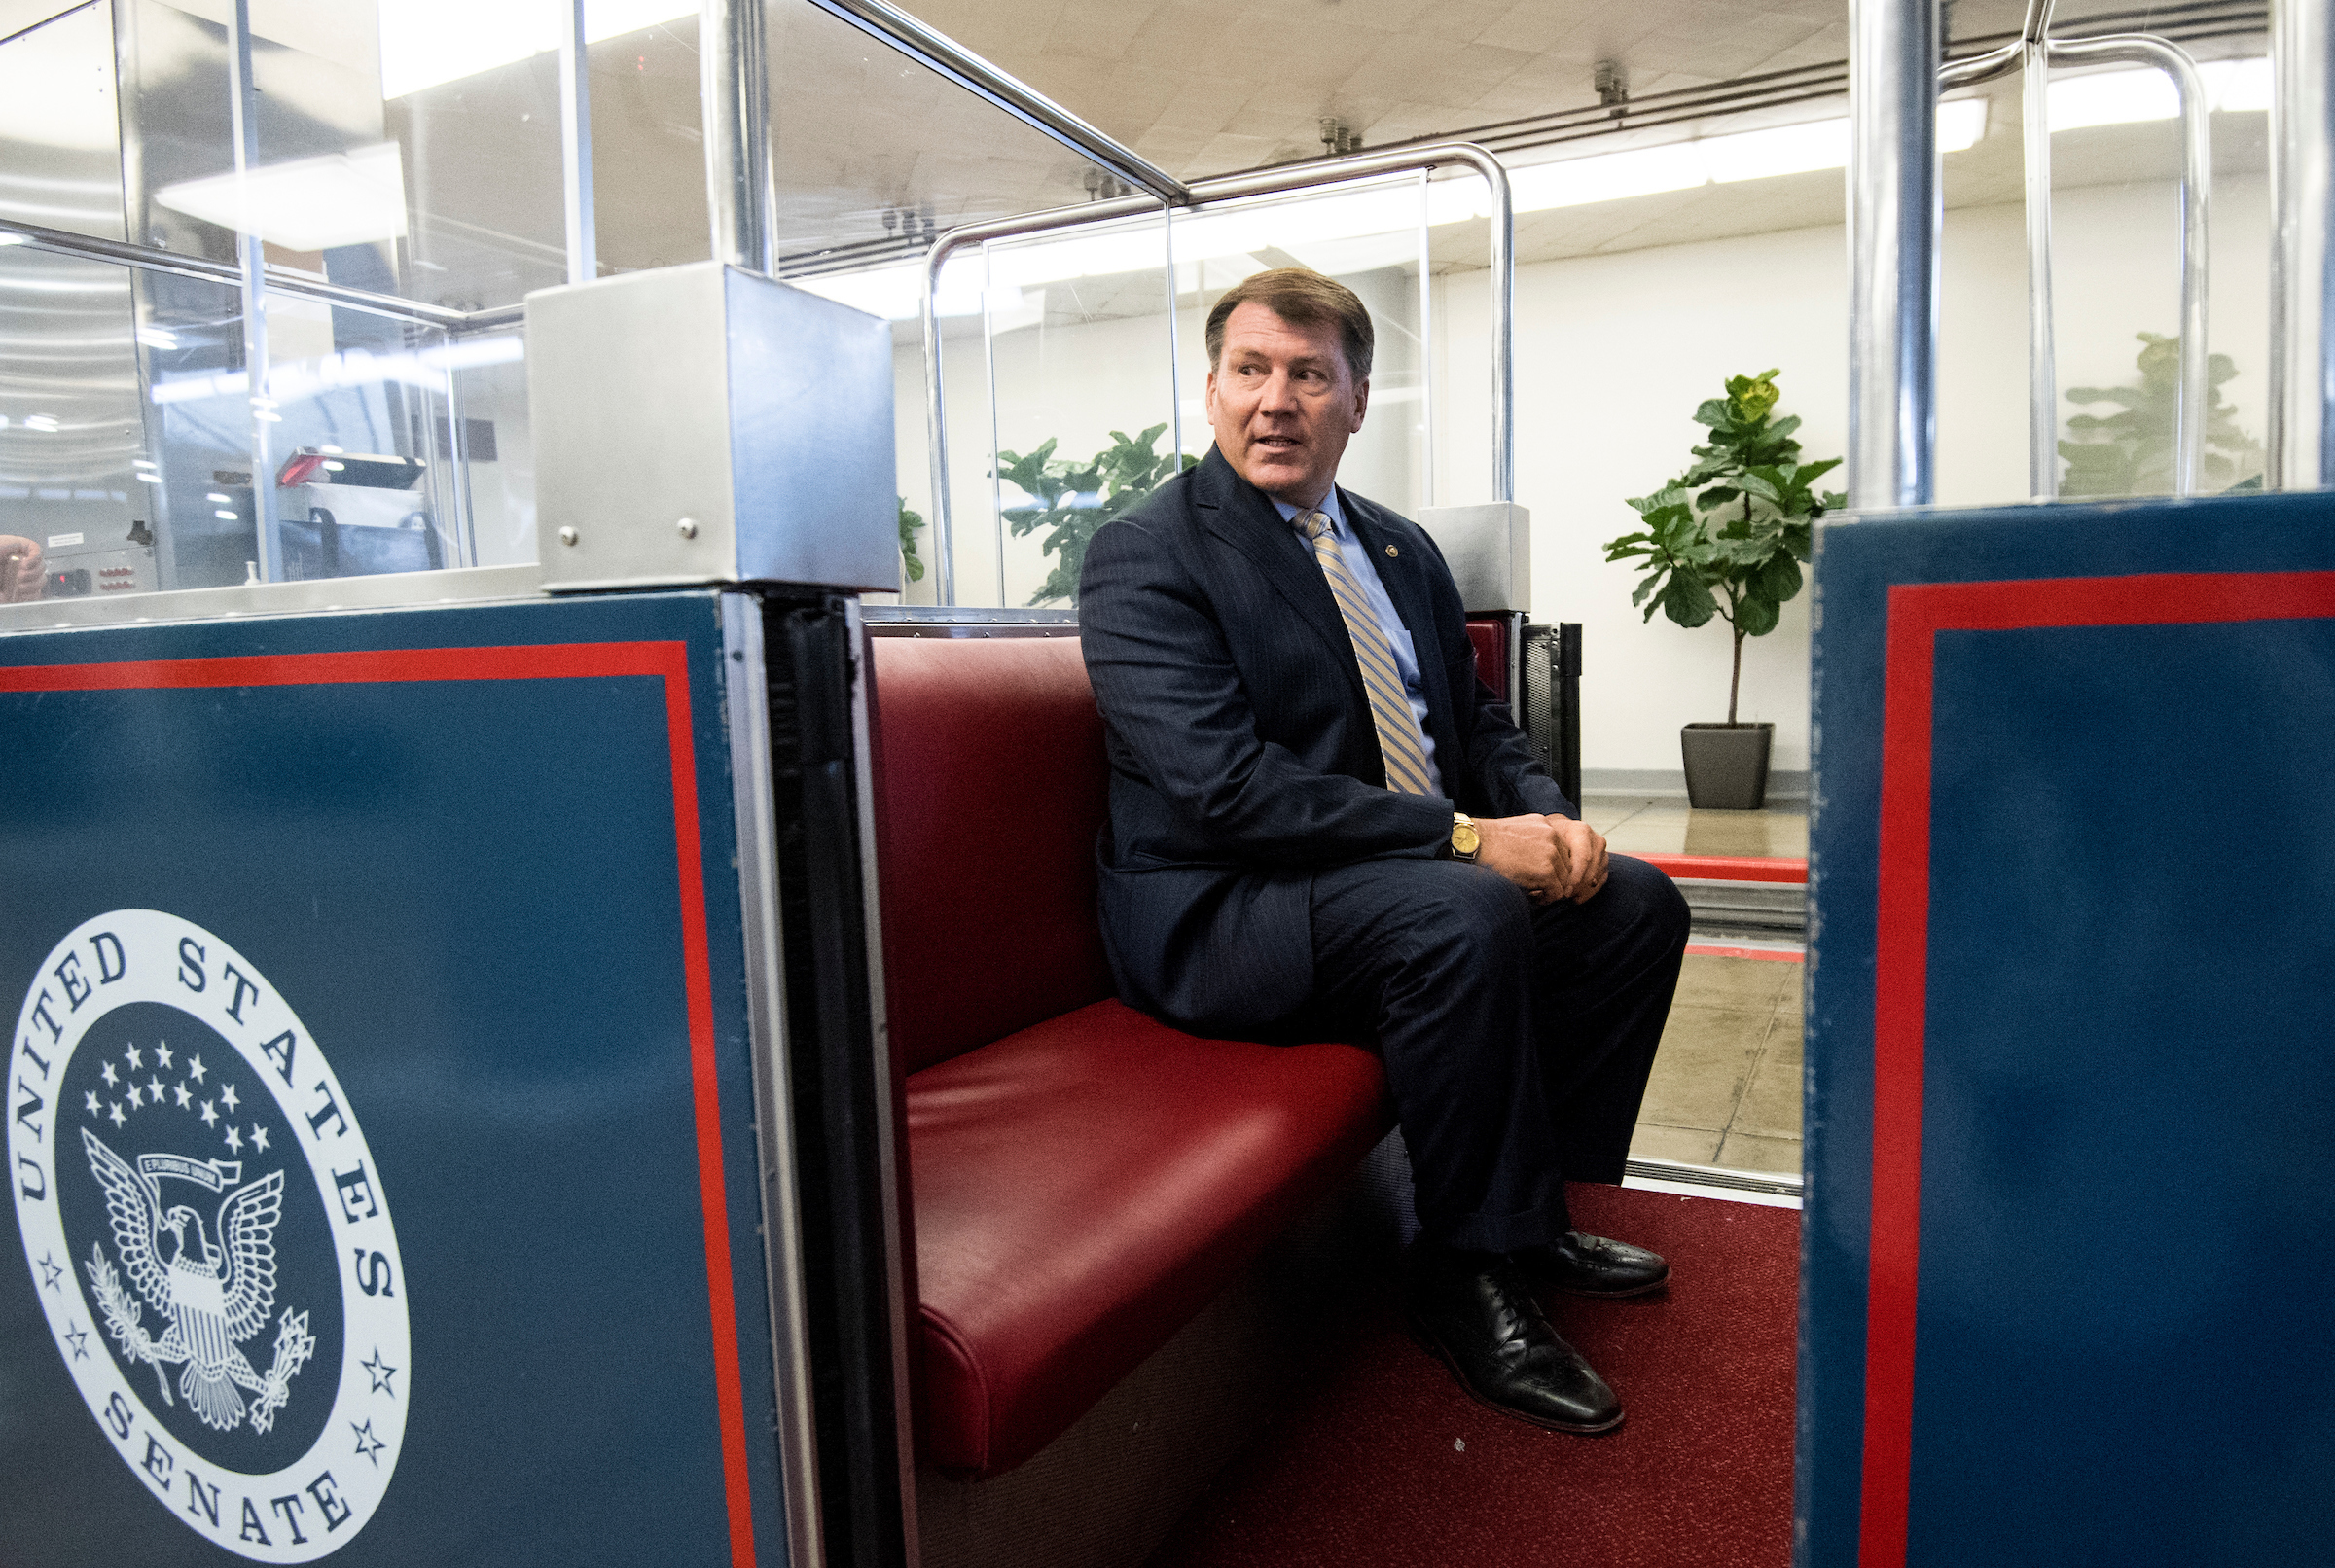 UNITED STATES - OCTOBER 19: Sen. Mike Rounds, R-S. Dak., boards the Senate subway in the Capitol for a vote on Thursday, Oct. 19, 2017. (Photo By Bill Clark/CQ Roll Call)